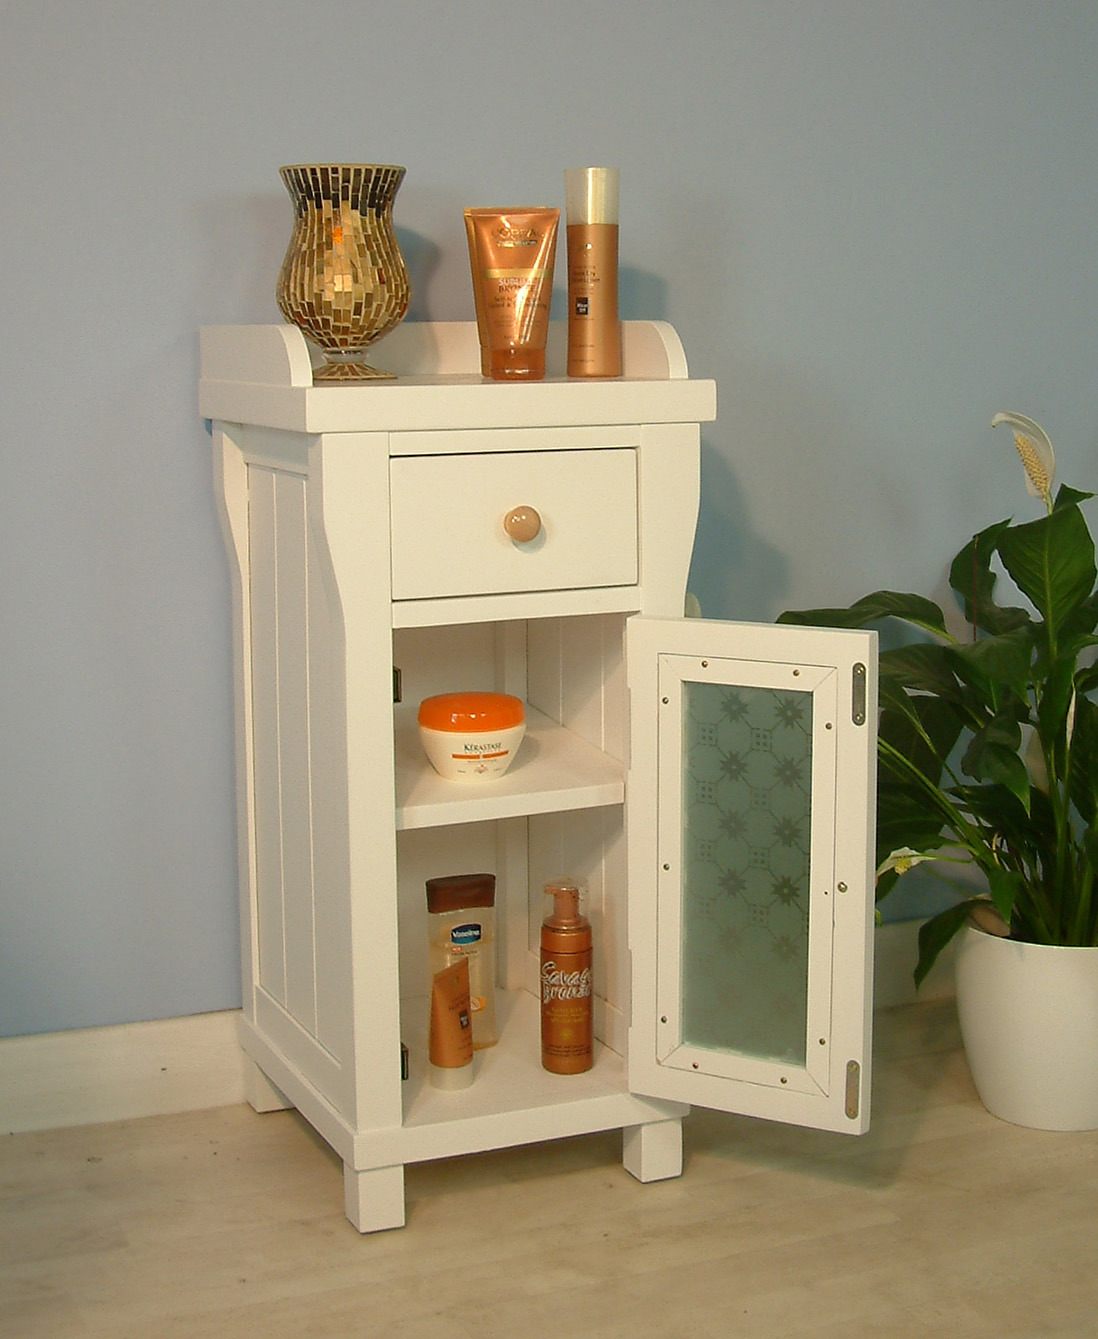 Small Storage Cabinet with Doors Lovely Wood Storage Cabinet with Doors — Melissa Francishuster Home